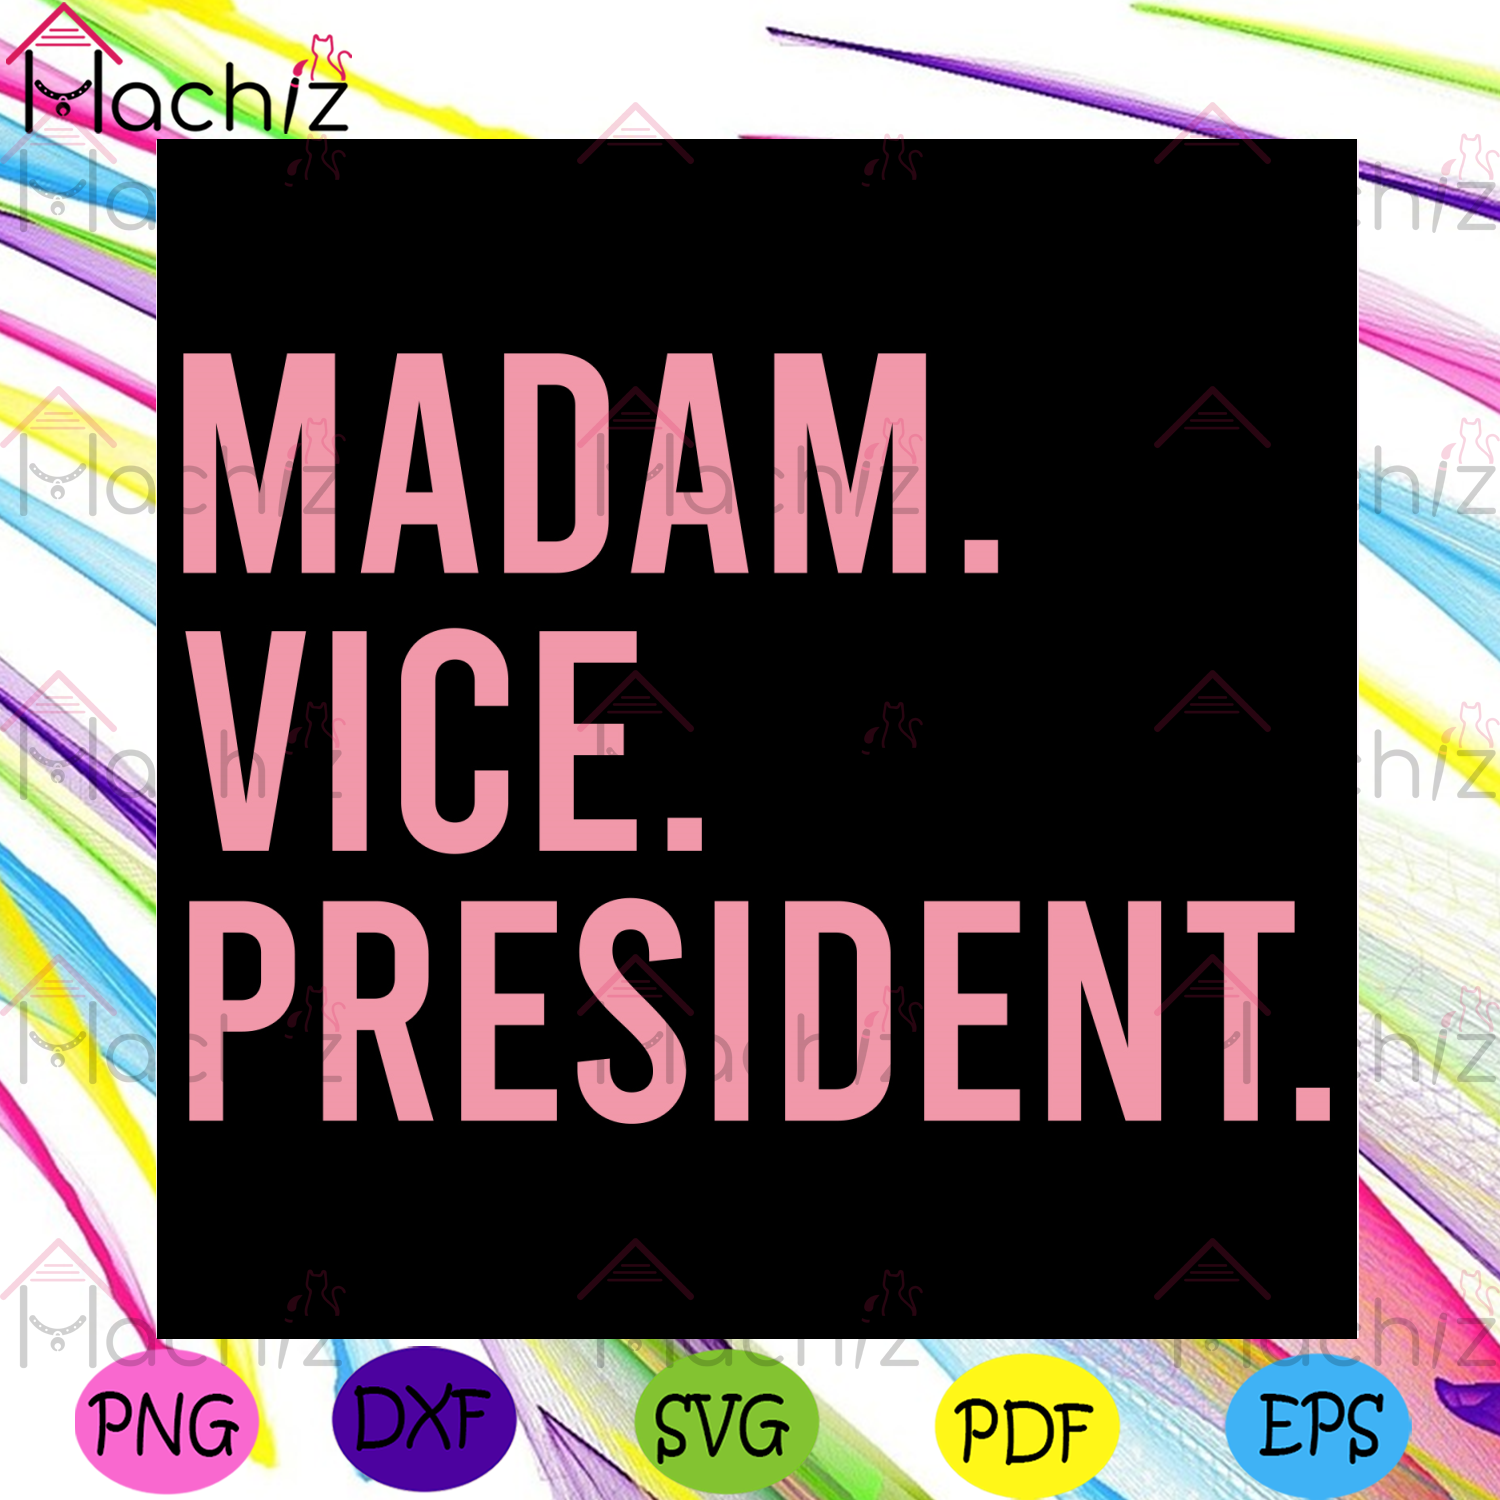 Madam Vice President Svg, Trending Svg, Madam Svg, Vice Svg, President Svg, Voted Svg, President Election Svg, Madam Gifts Svg, President Gifts Svg, Funny Svg, Funny Design Svg, Saying Svg, Quotes Svg, Pink Quotes Svg